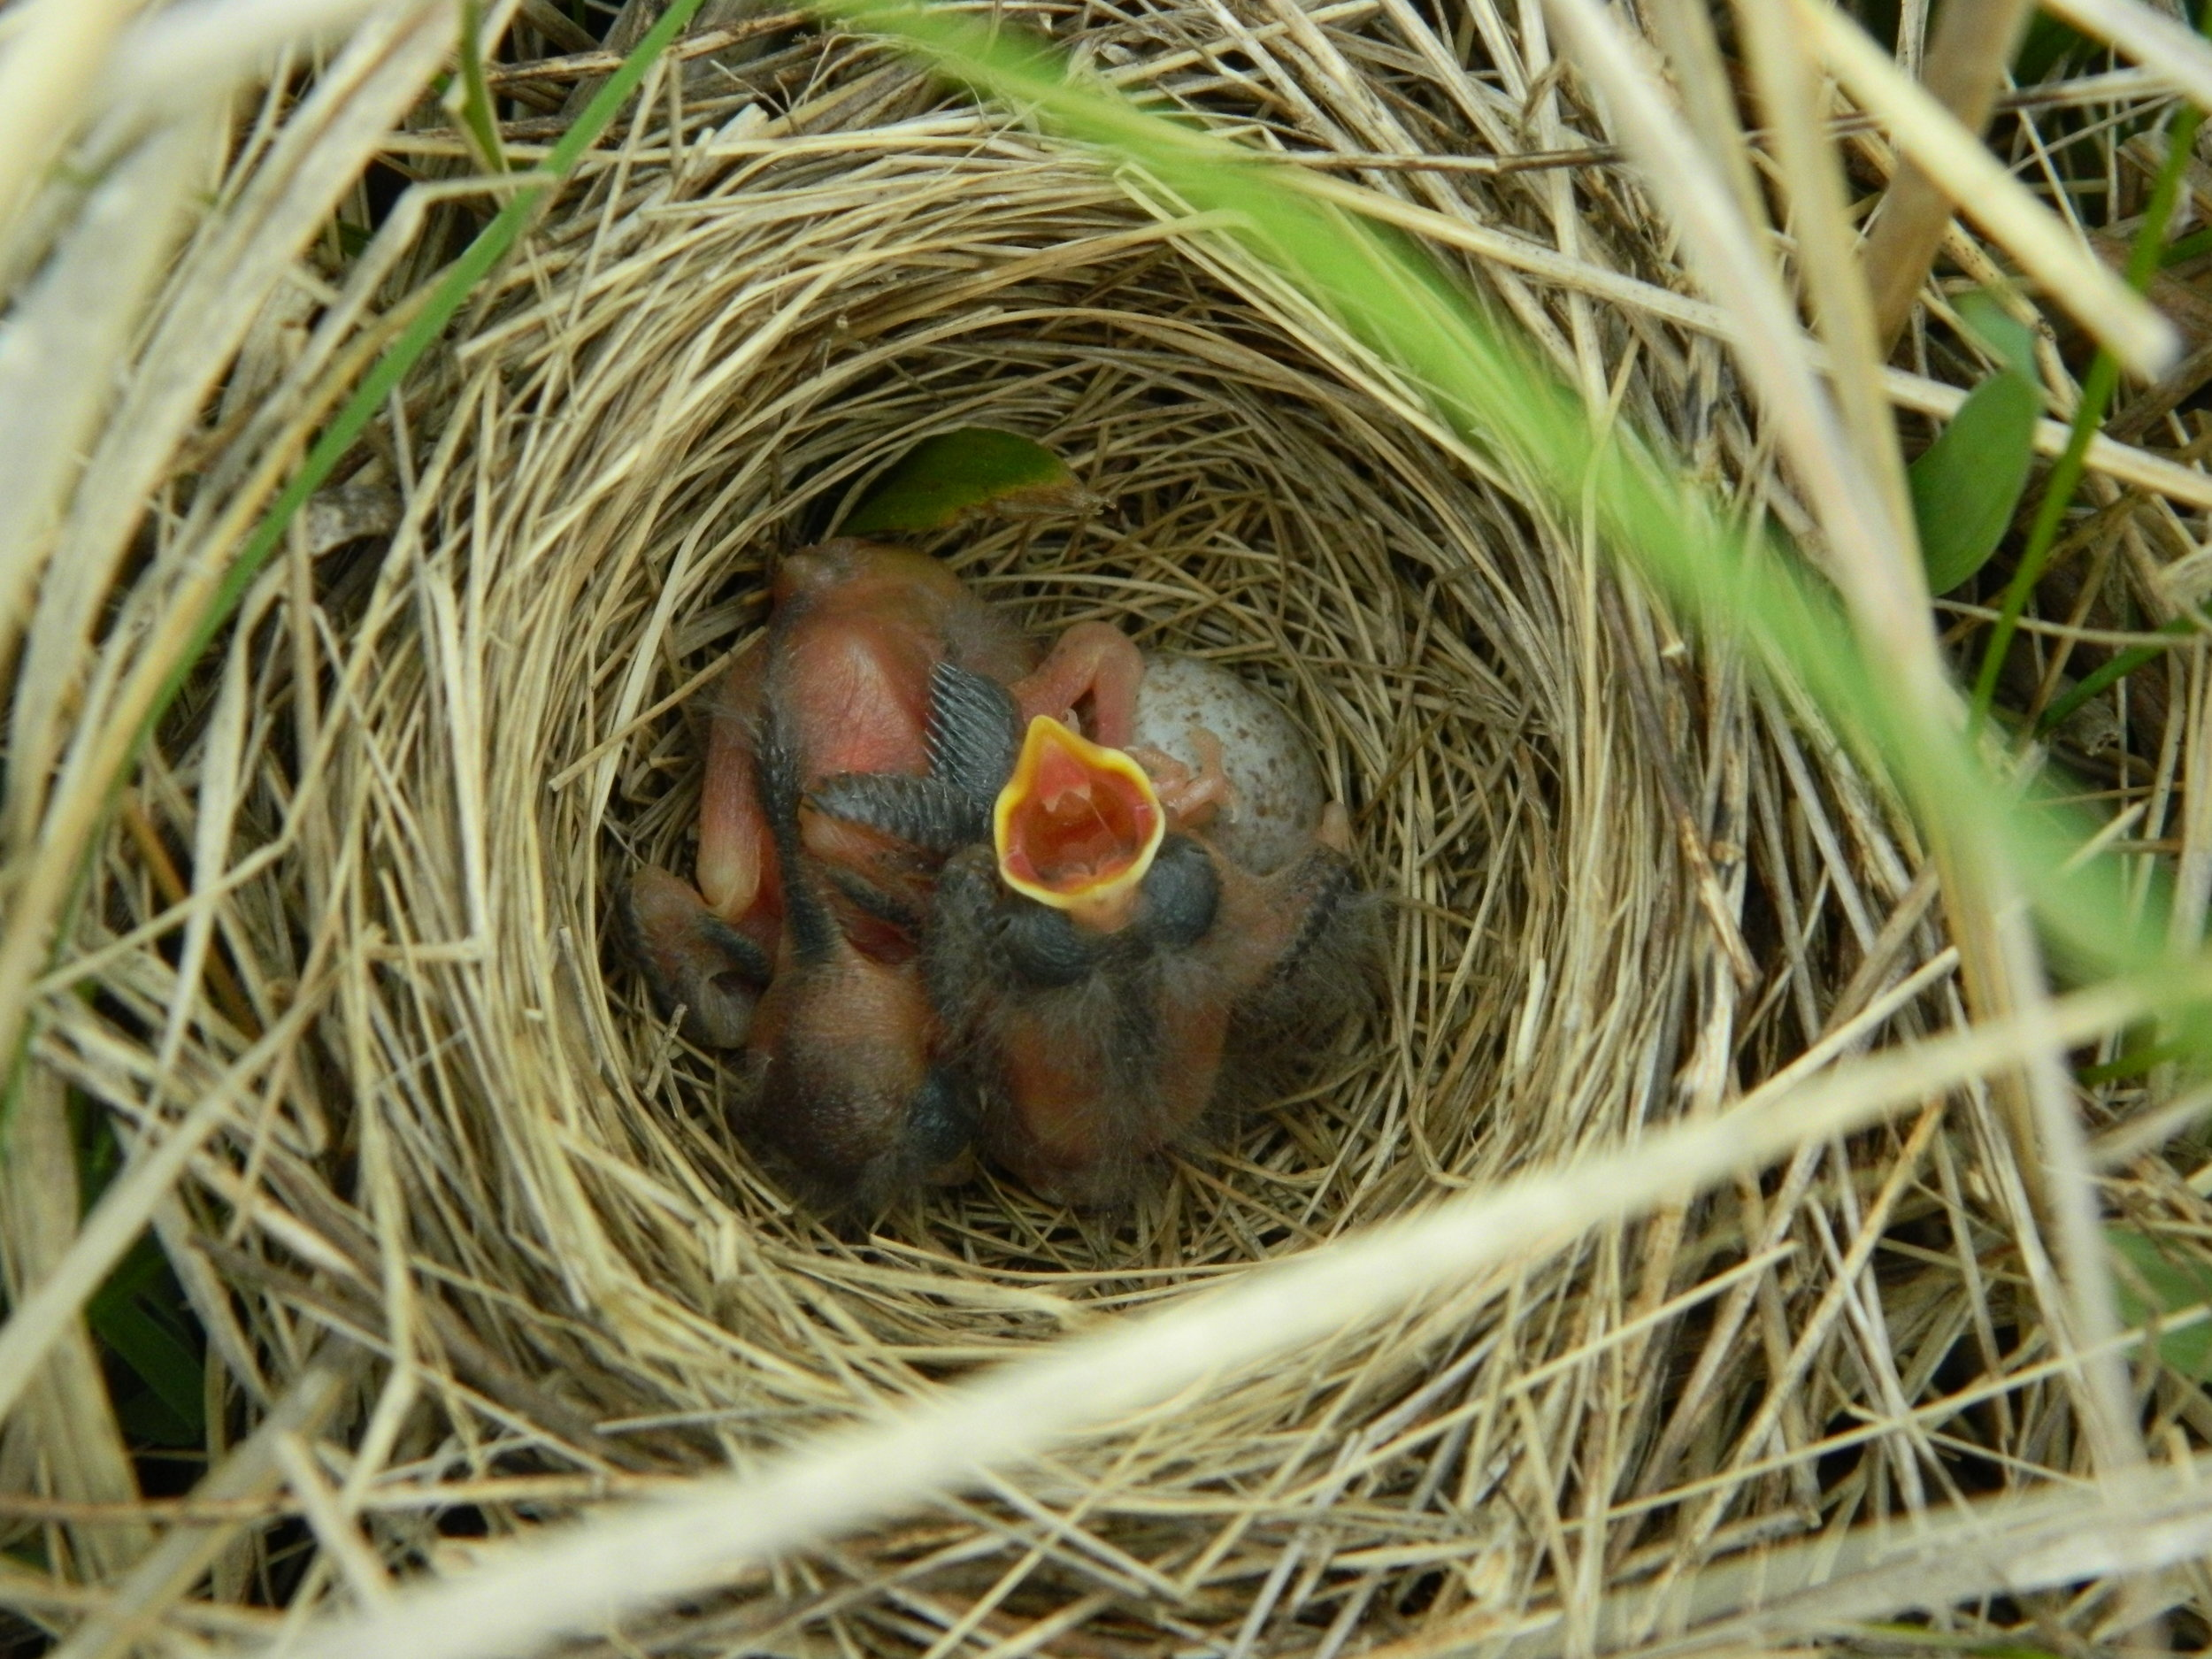 Carolyn_Byers_FieldSparrowNest_DO-NOT-USE-WITHOUT-PERMISSION.JPG